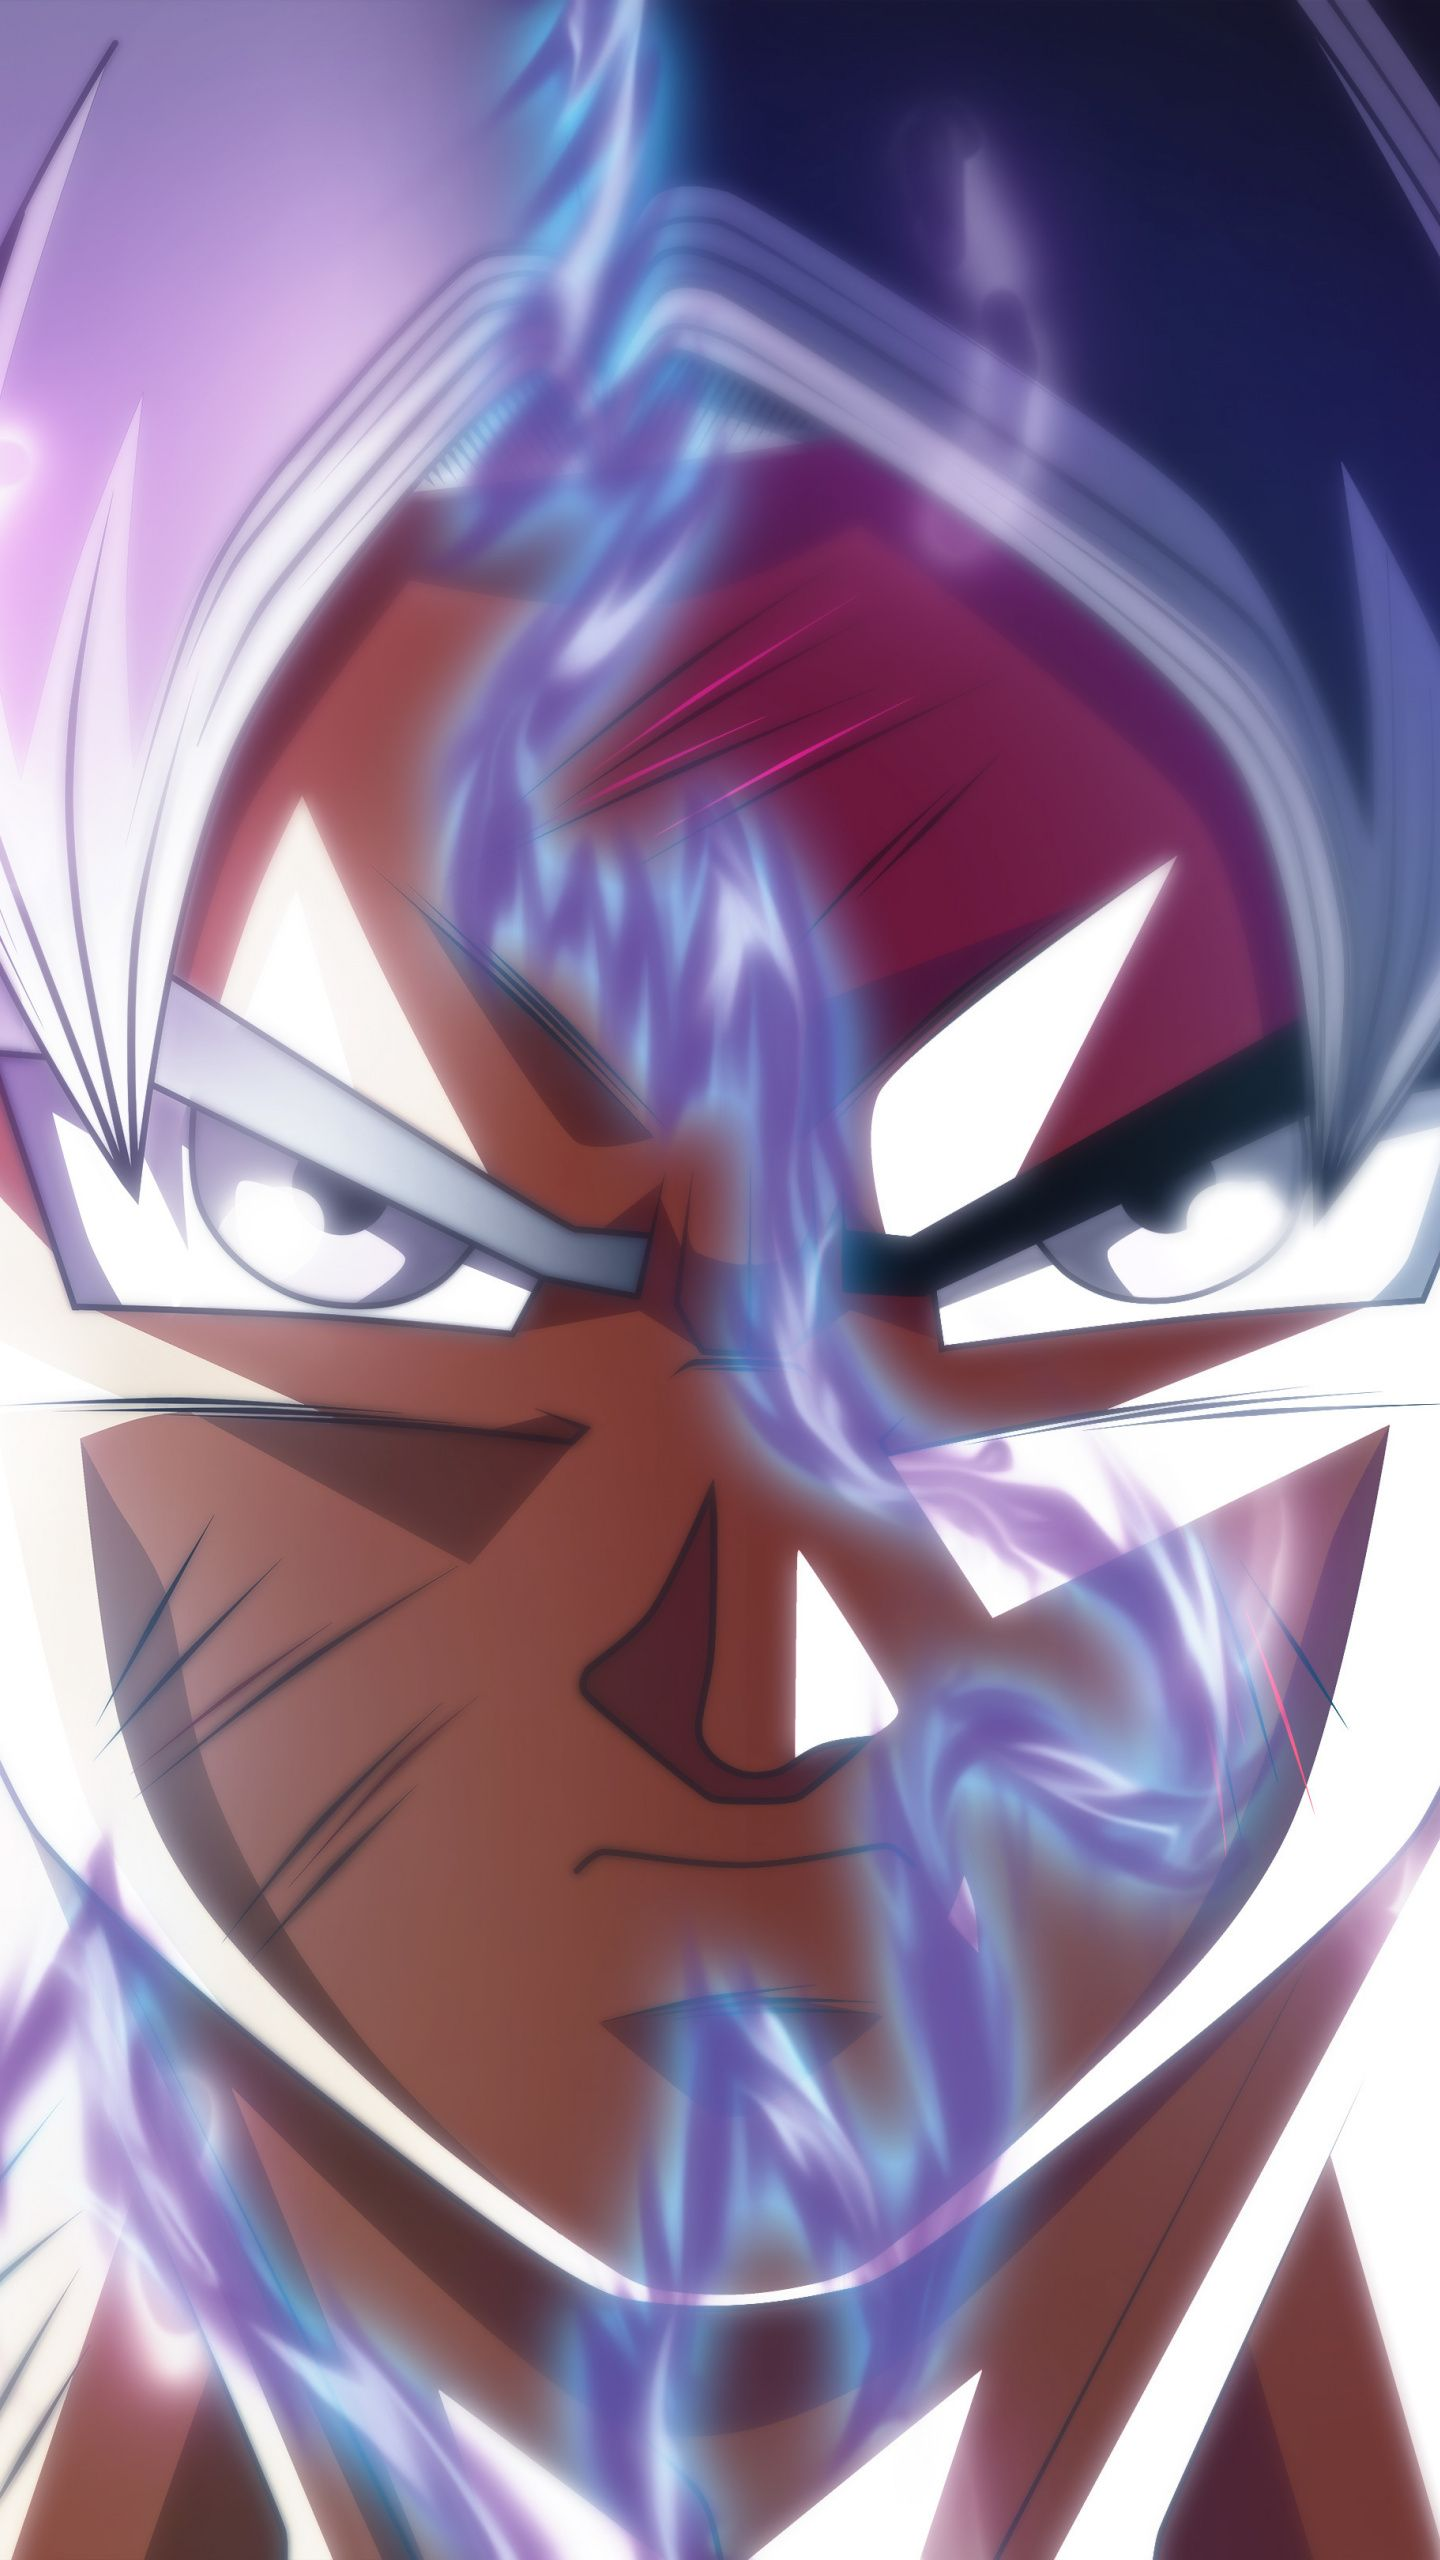 Download 1440x2560 Wallpaper Goku Face Off Ultra Instinct Dragon Ball Super 5k Qhd Samsun Anime Dragon Ball Super Dragon Ball Goku Dragon Ball Super Manga